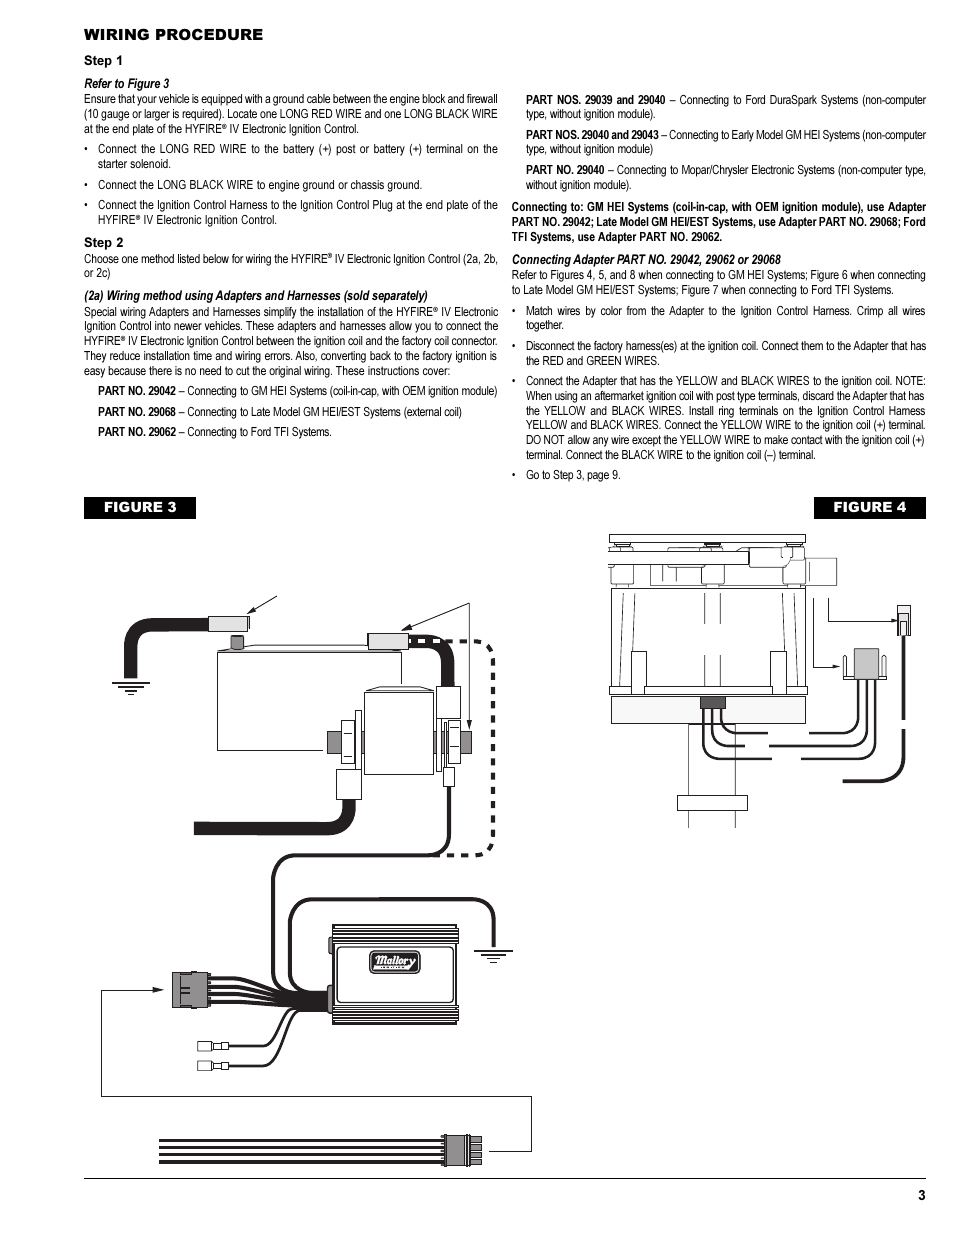 Ford Ignition System Wiring Diagram on 1989 ford f250 ignition wiring diagram, ignition coil wiring diagram, basic ignition system diagram, msd ignition wiring diagram, 1968 ford f100 ignition wiring diagram, ford 302 ignition wiring diagram, 1980 ford ignition wiring diagram, ford ignition wiring diagram fuel, ford cop ignition wiring diagrams, 1994 ford bronco ignition wiring diagram, ford electrical wiring diagrams, ford ignition module schematic, ford wiring harness diagrams, ford ranger 2.9 wiring-diagram, ford tractor ignition switch wiring, 1979 ford ignition wiring diagram, 1976 ford ignition wiring diagram, ford ignition solenoid, ford falcon wiring-diagram, 1974 ford ignition wiring diagram,